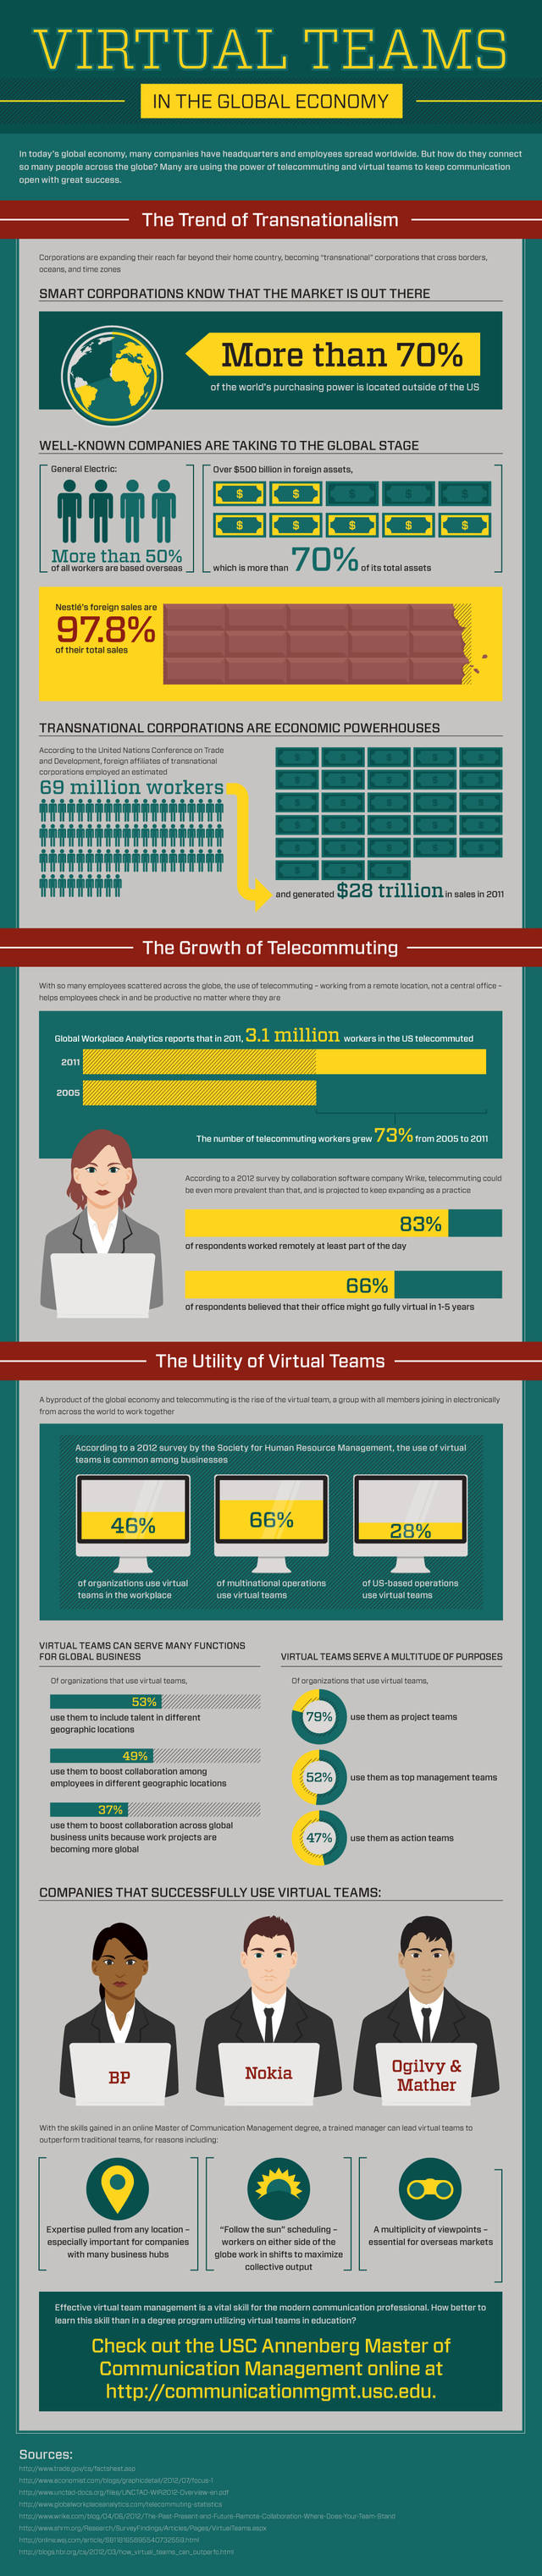 Infographic  virtual teams in the global economy